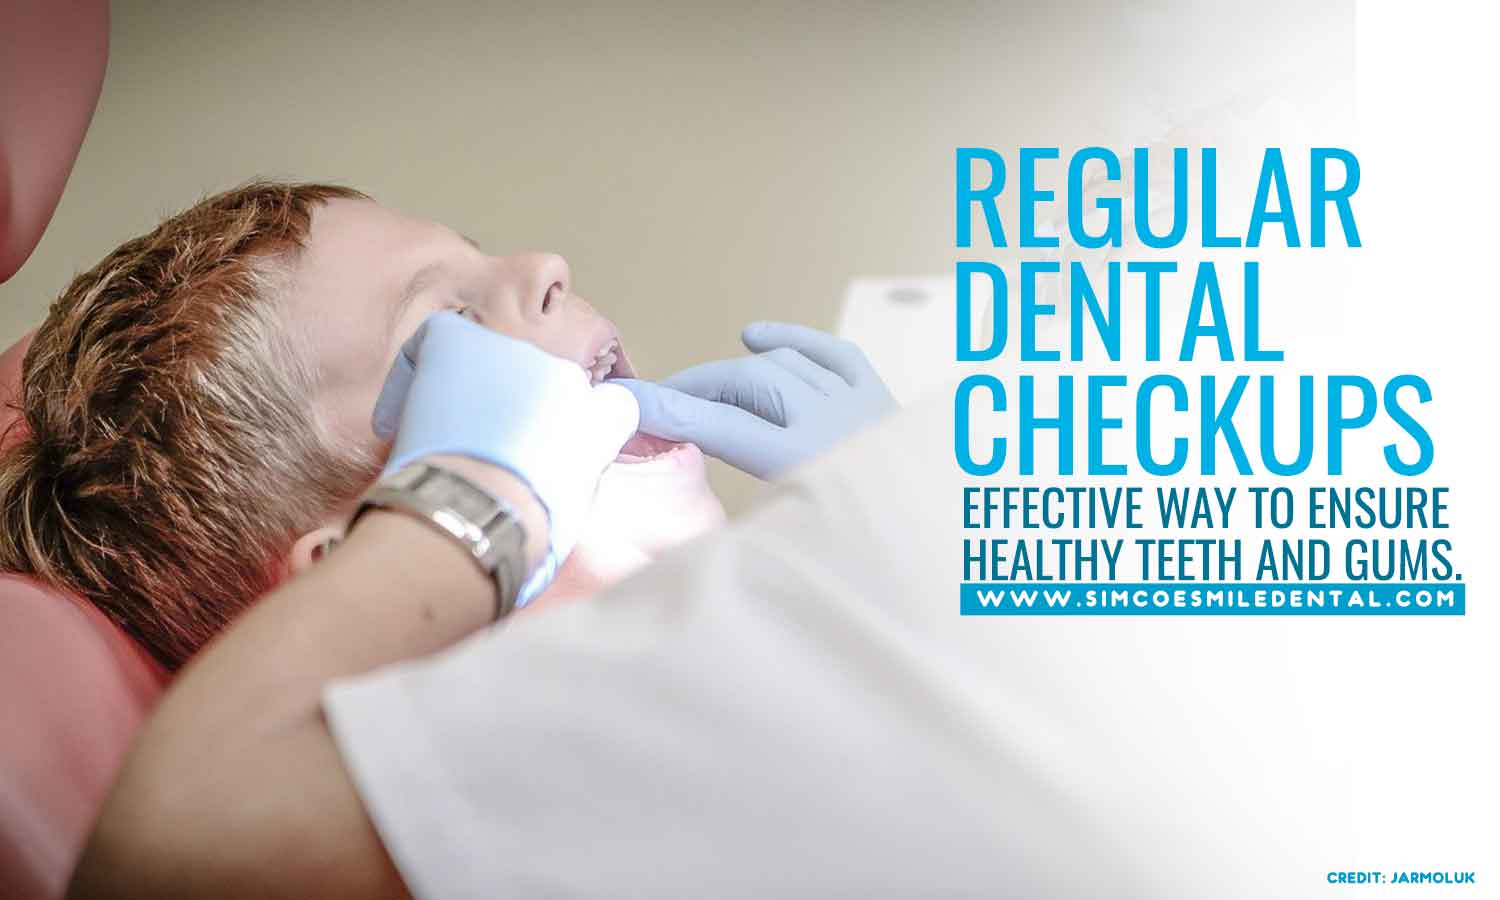 Regular-dental-checkups-are-the-most-effective-way-to-ensure-healthy-teeth-and-gums How A Healthy Lifestyle Can Preserve Your Oral Health